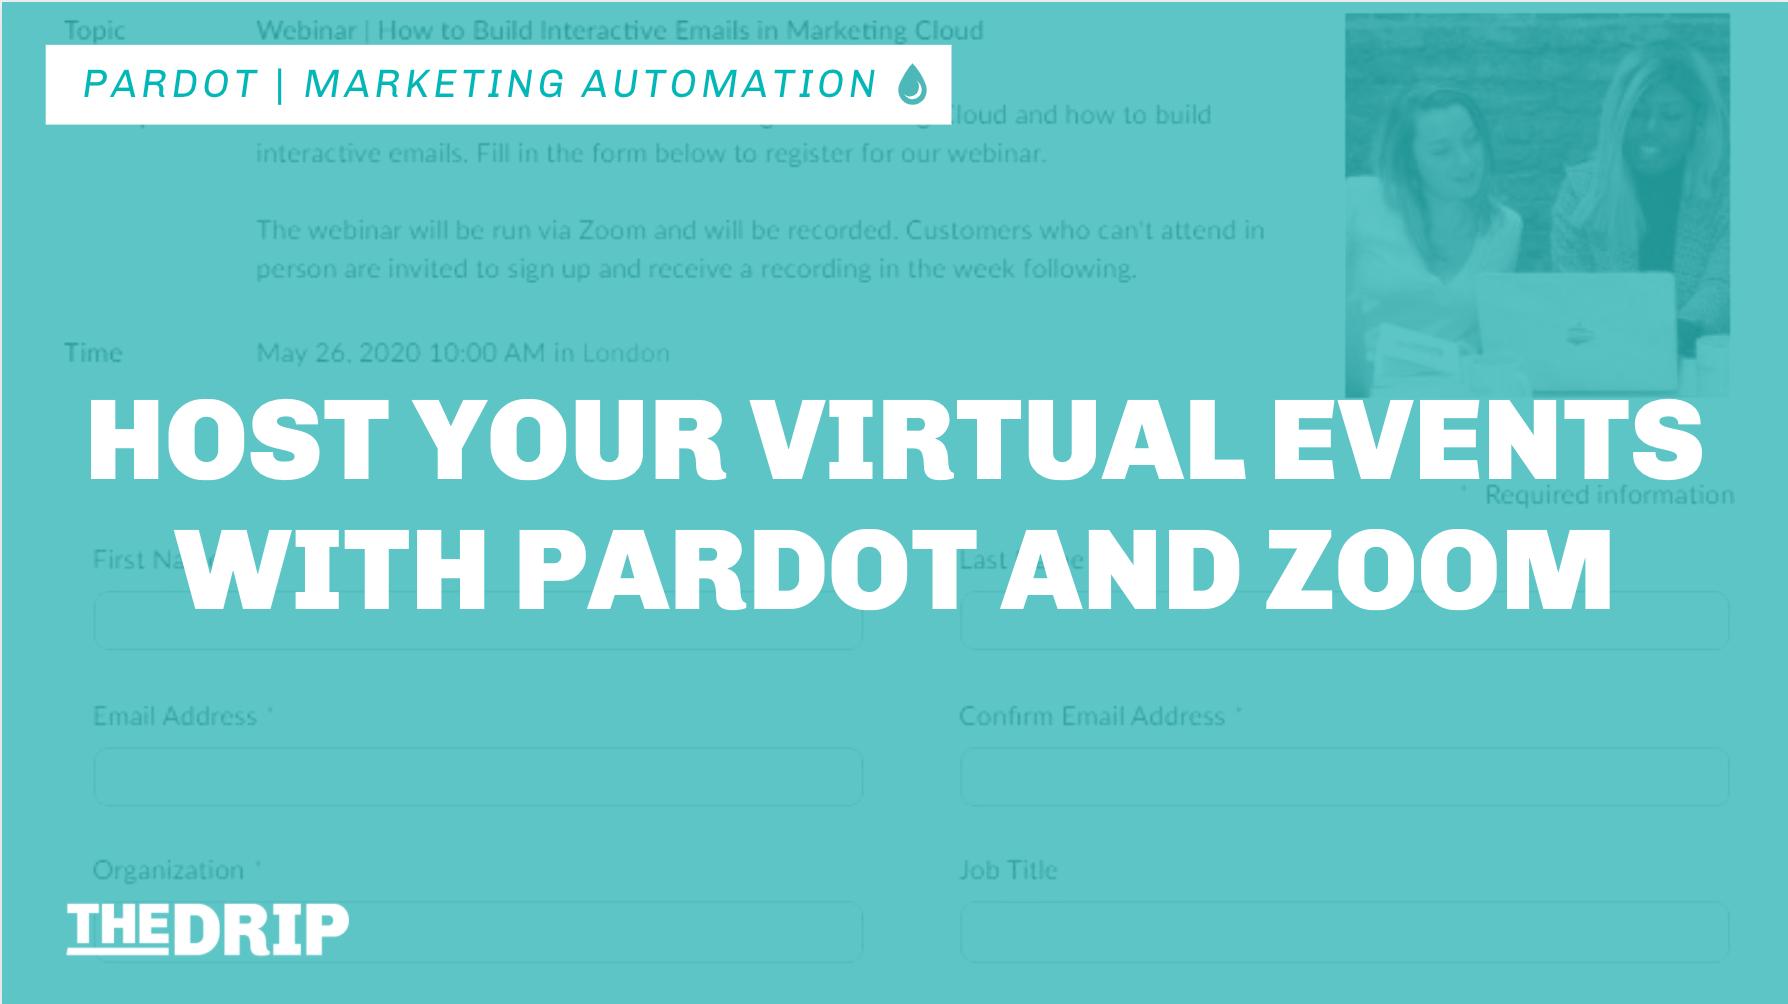 Host your Virtual Events with Pardot and Zoom